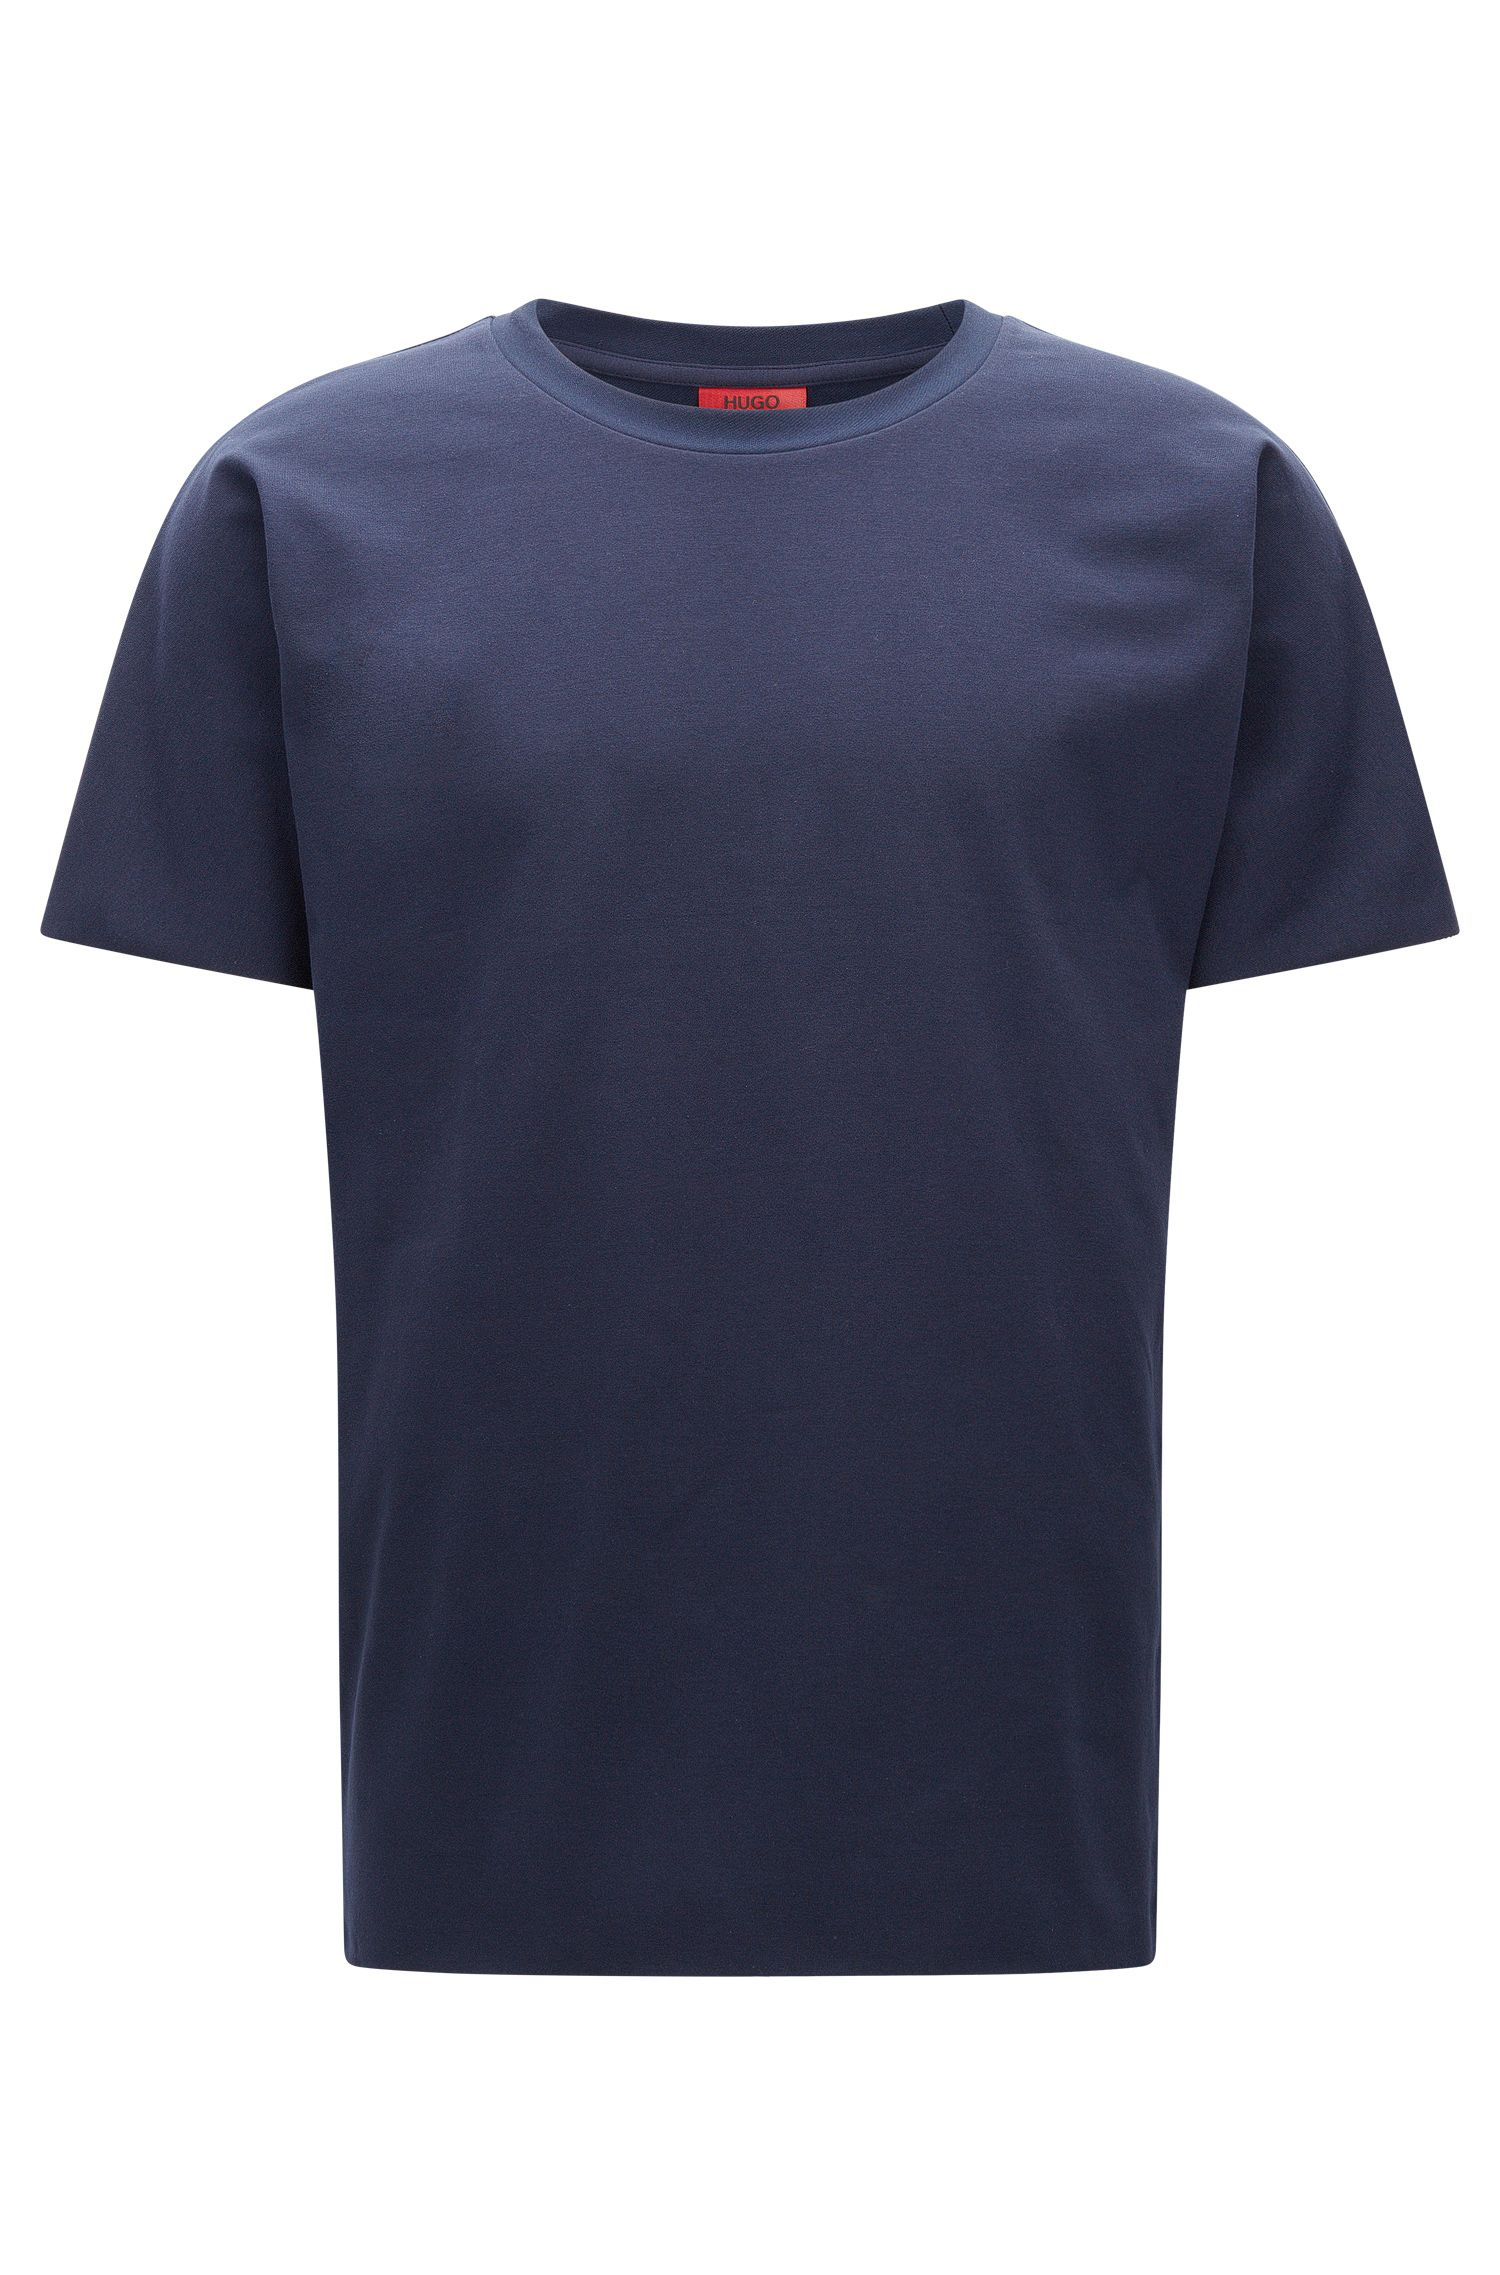 T-shirt Relaxed Fit en twill French terry